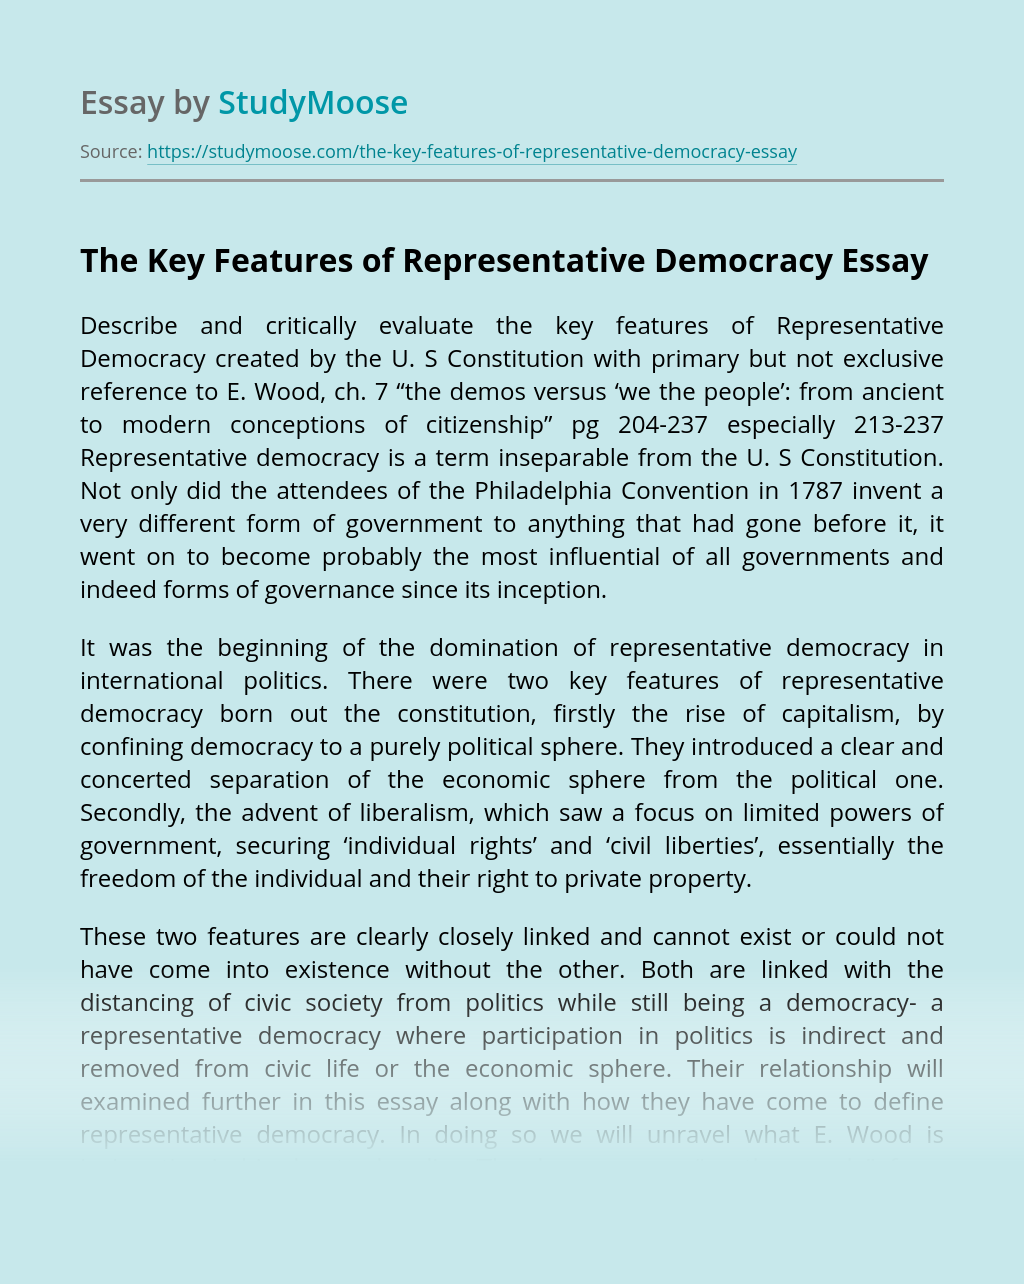 The Key Features of Representative Democracy